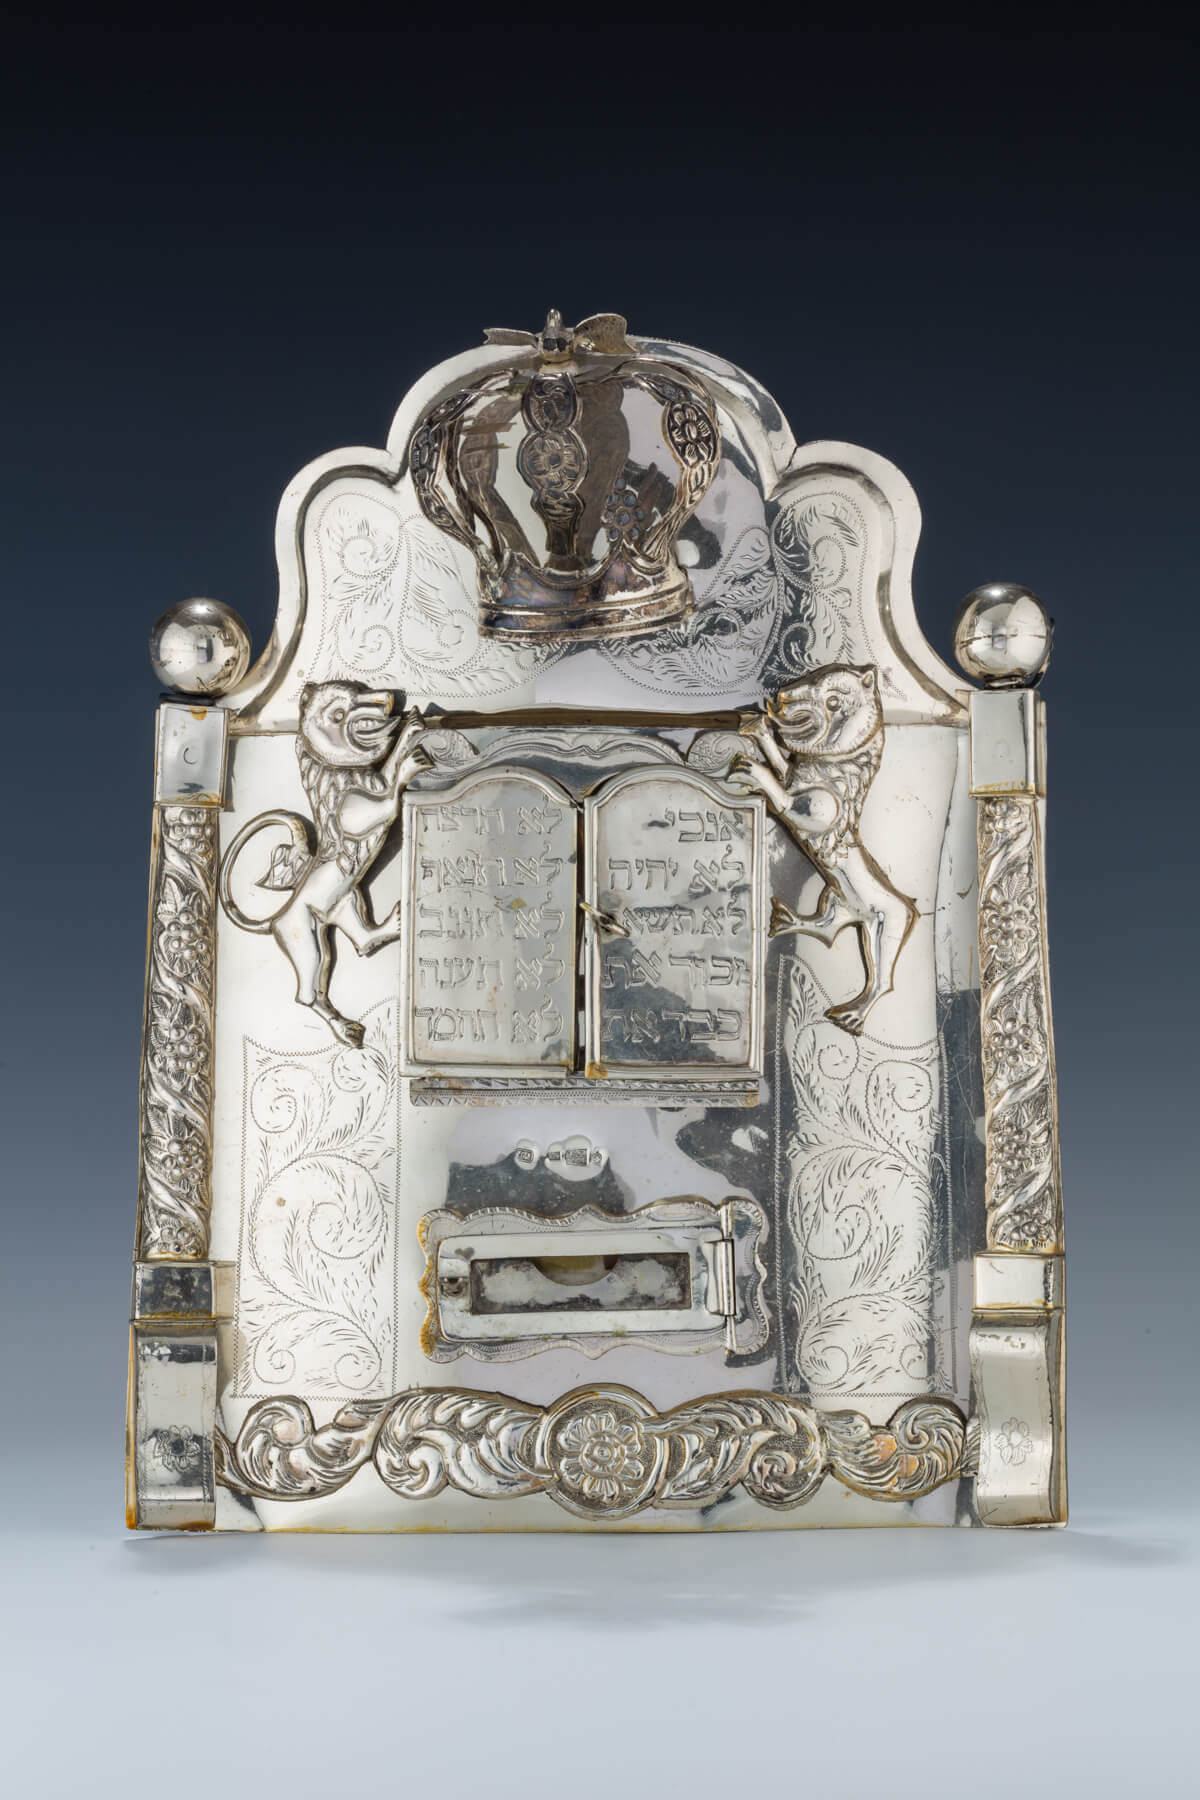 037. A SILVER TORAH SHIELD